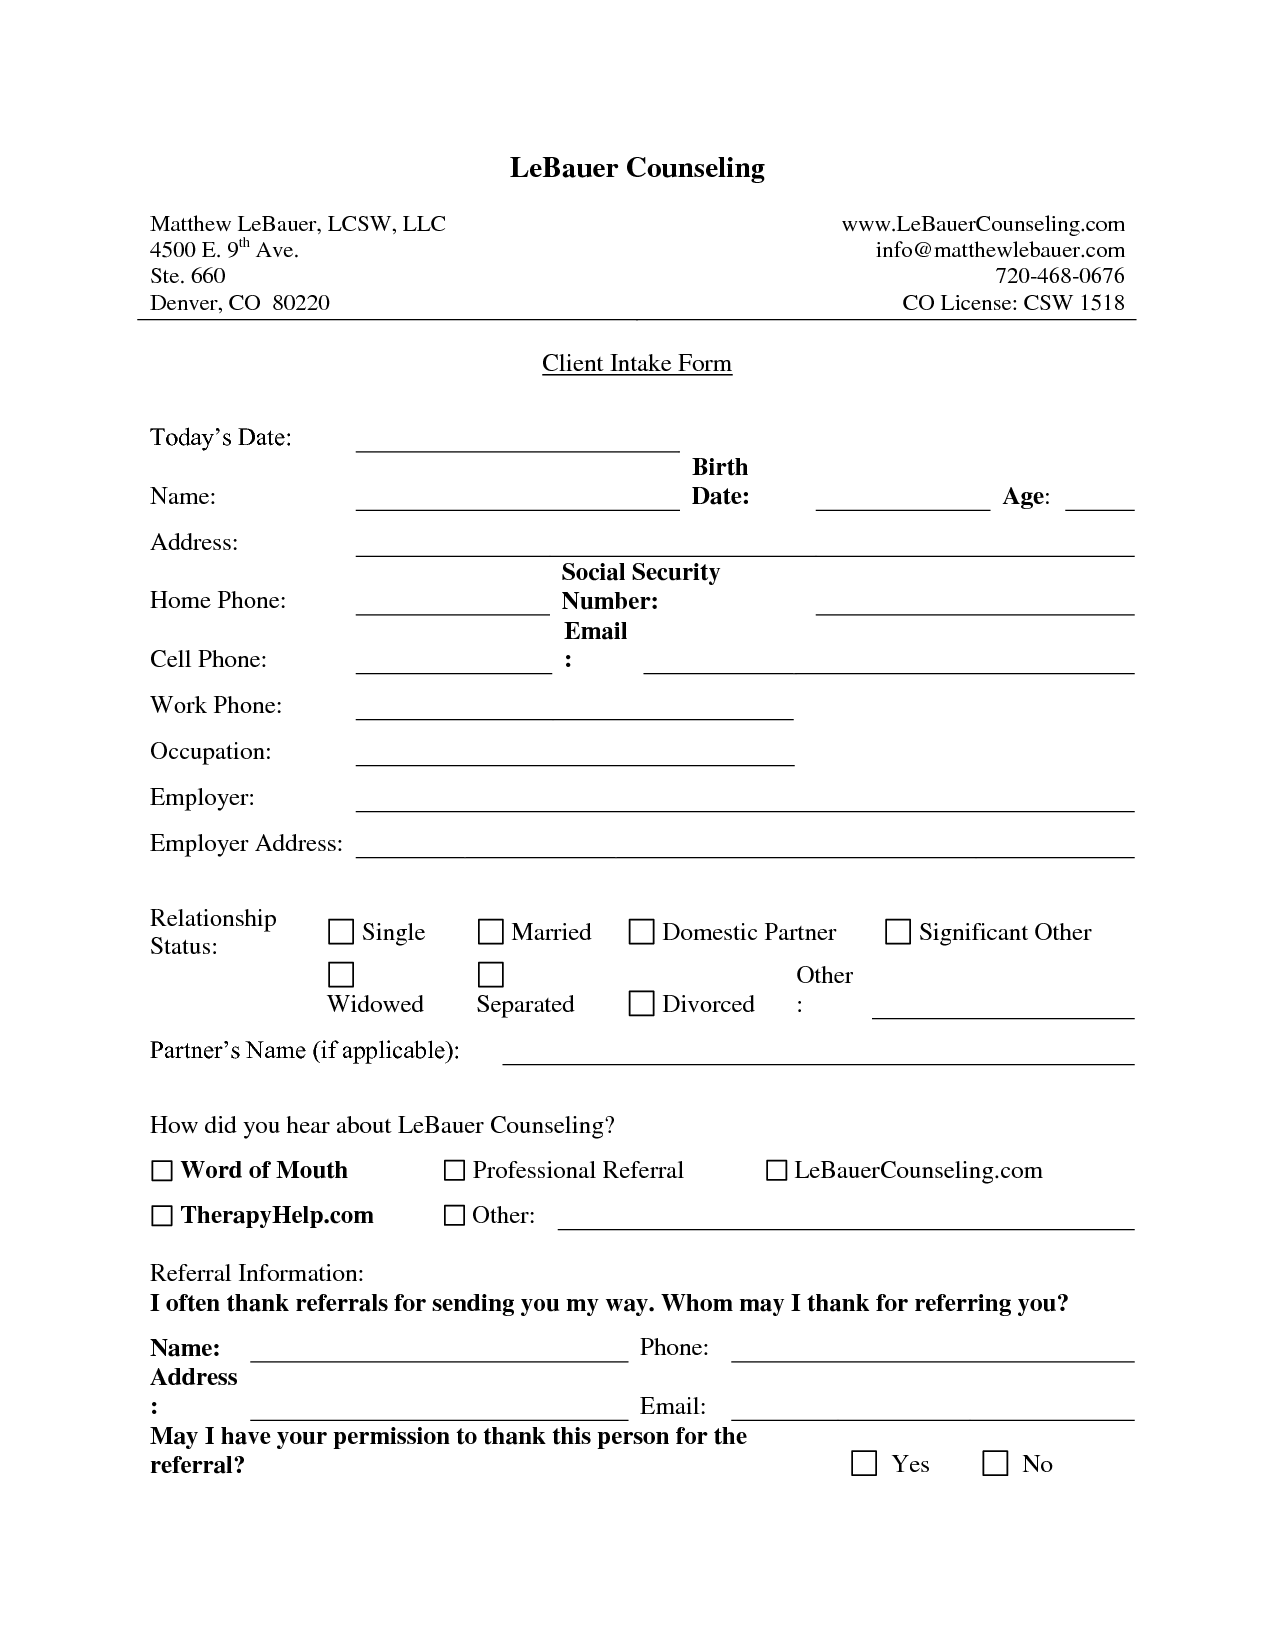 New client intake form template fogiid clipart kid for Client information form template free download